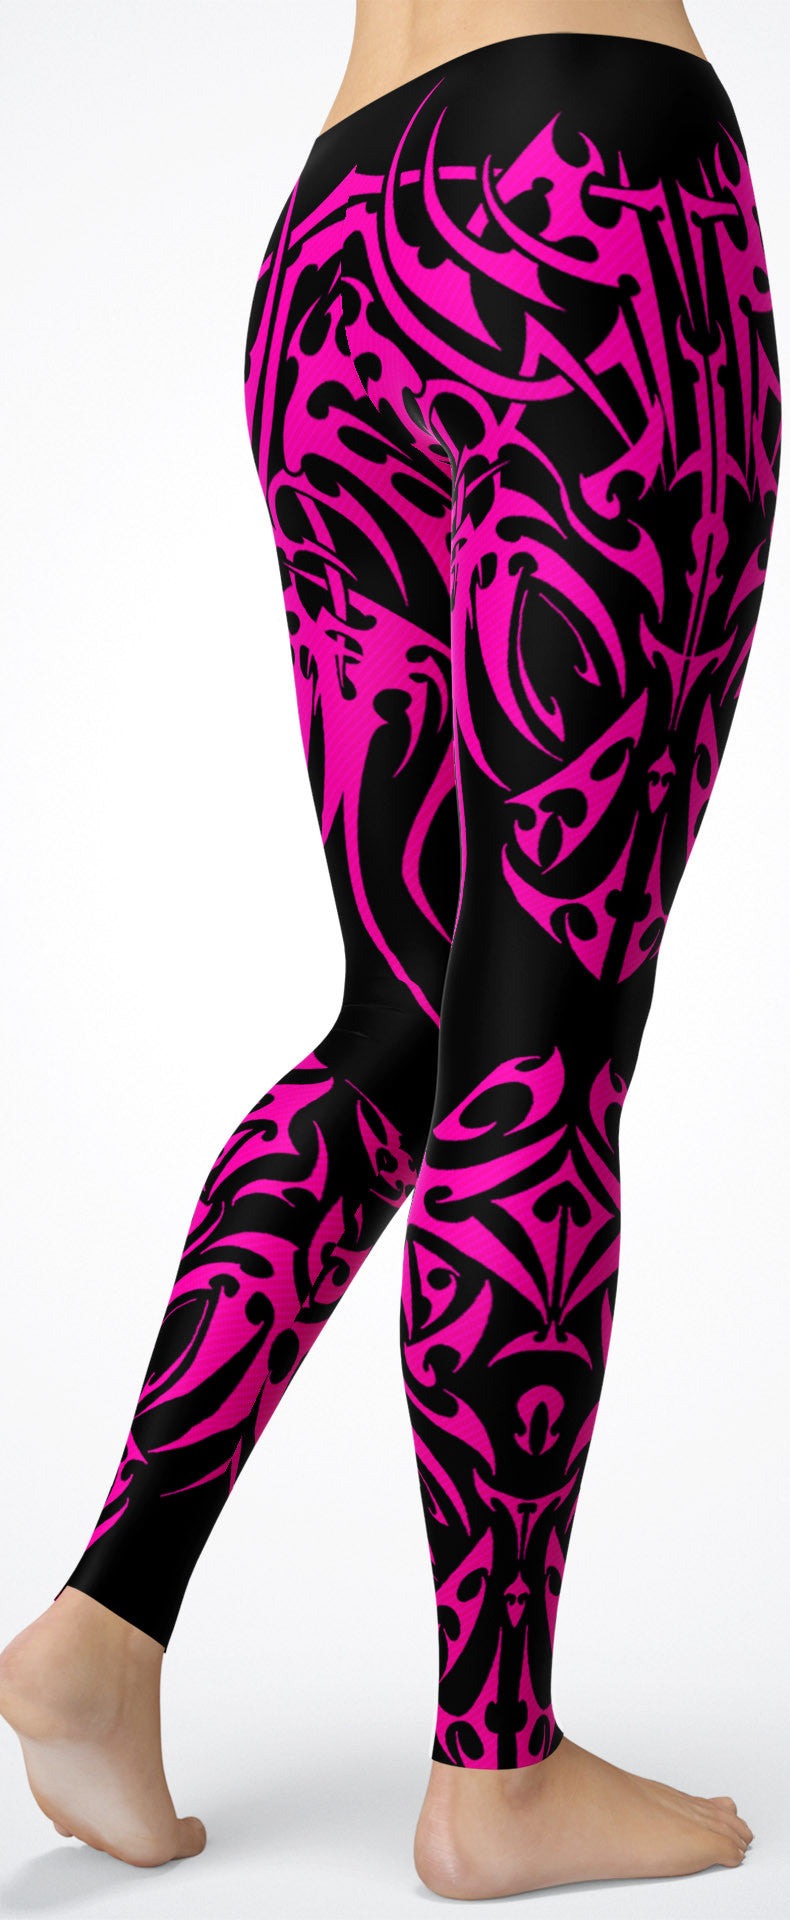 Pink Tribal Tattoo-Pattern Leggings